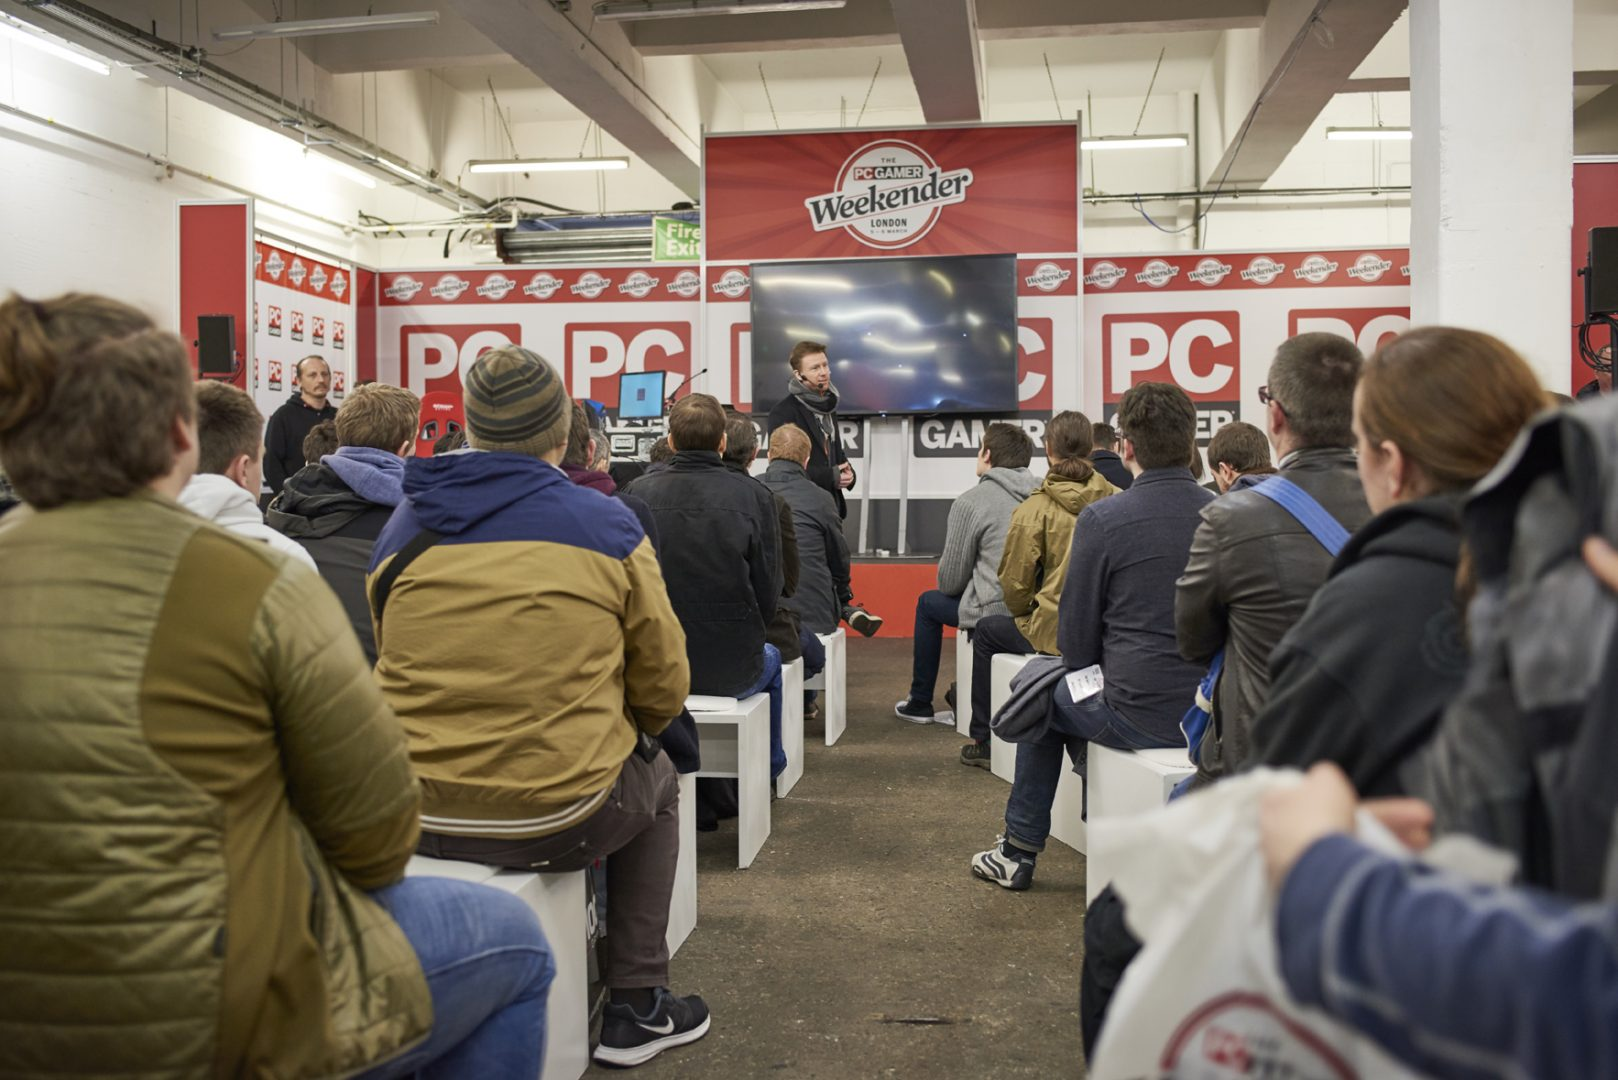 All about the PC Gamer Weekender, plus discounts and win tickets!